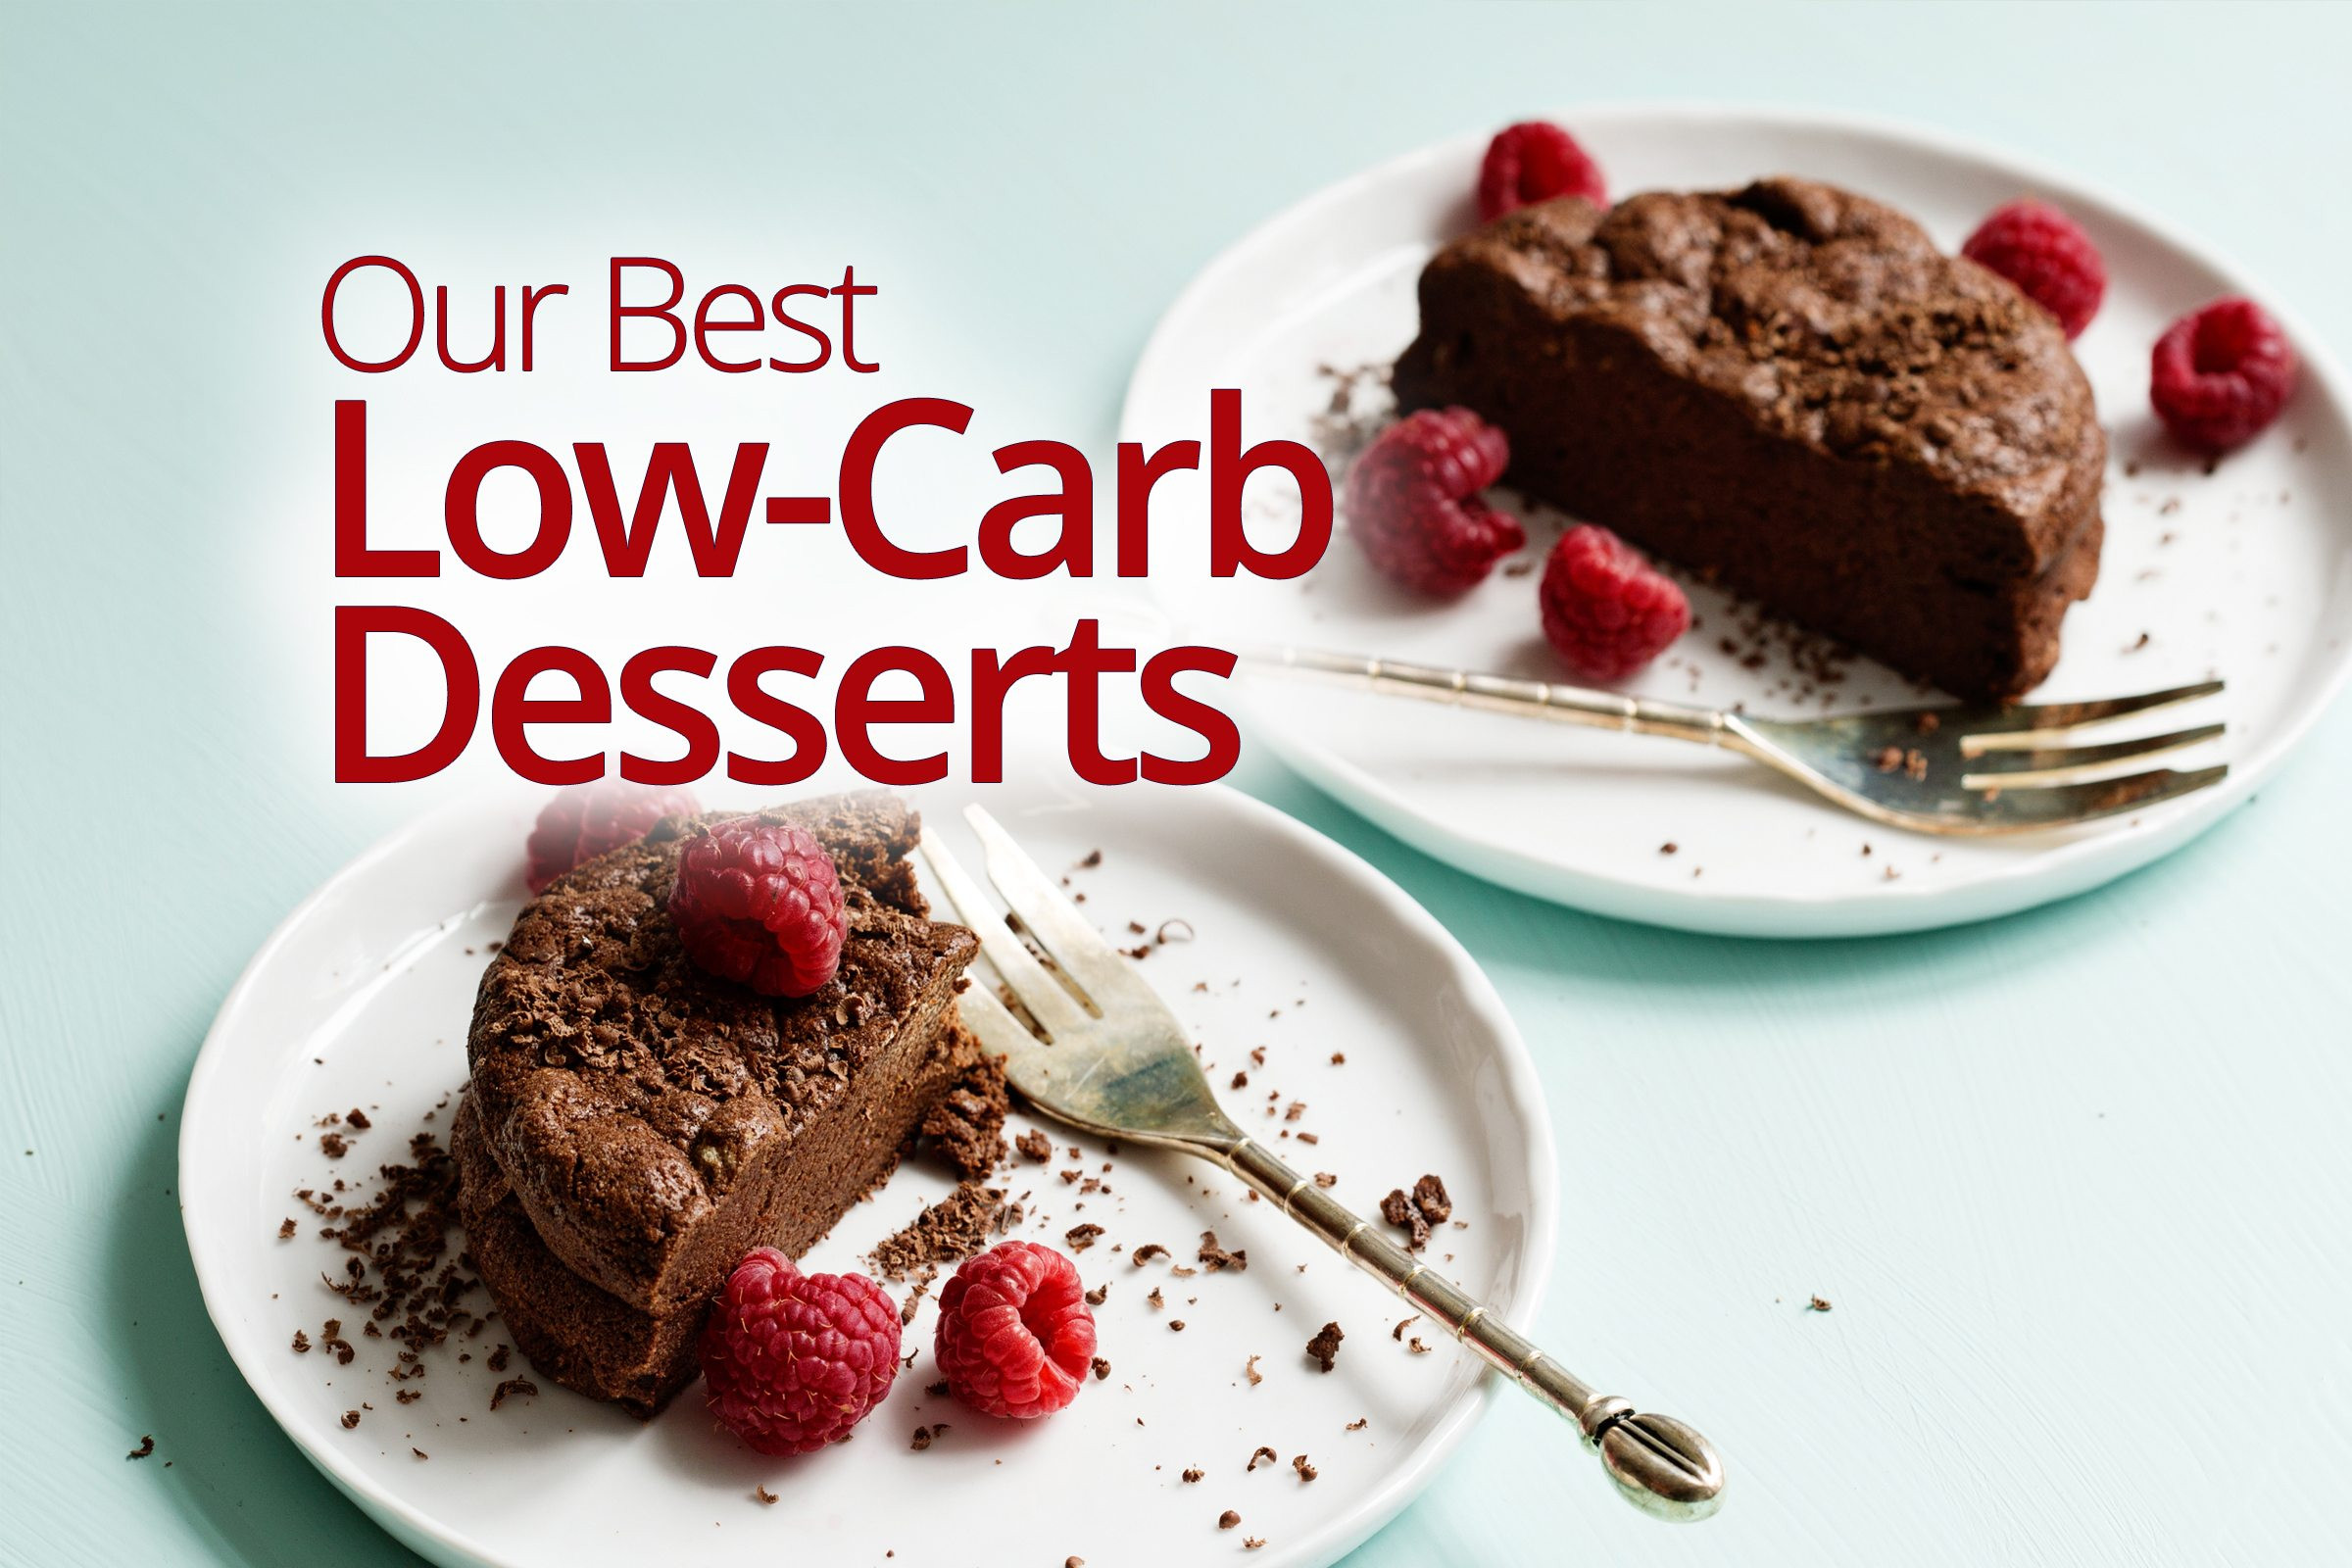 Quick Low Carb Desserts  Our Best Low Carb Desserts Diet Doctor